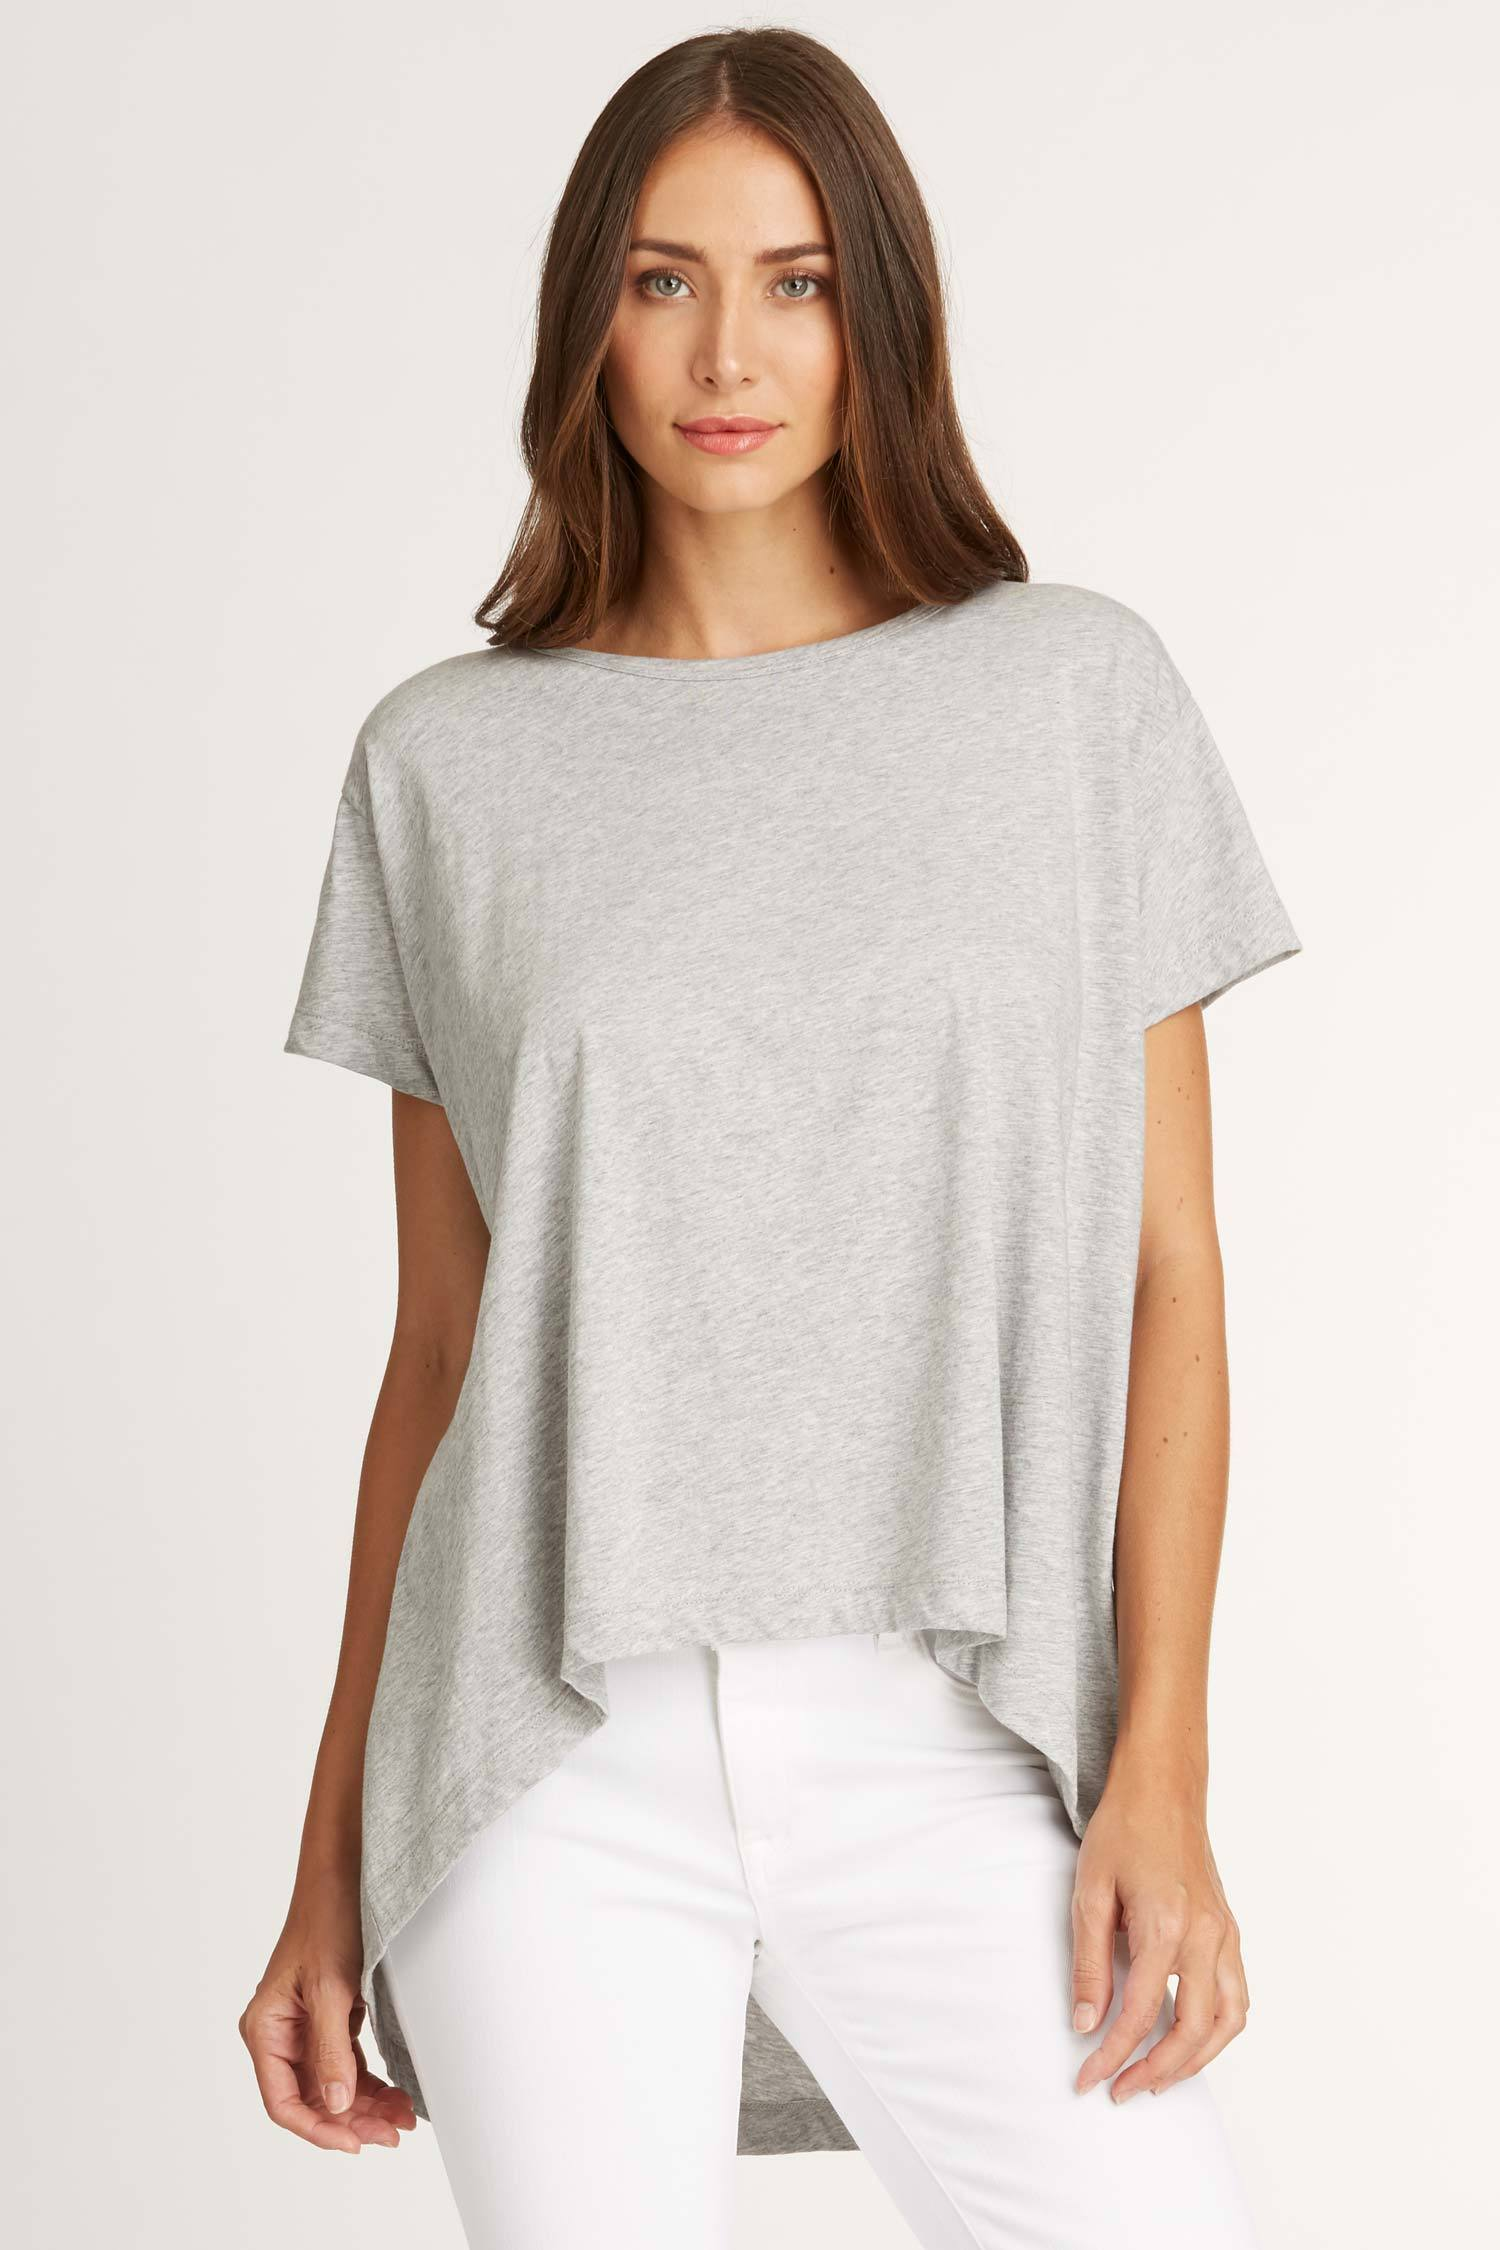 b3ab26dfdf5508 Women s T-Shirt Top Relaxed High Low Tee